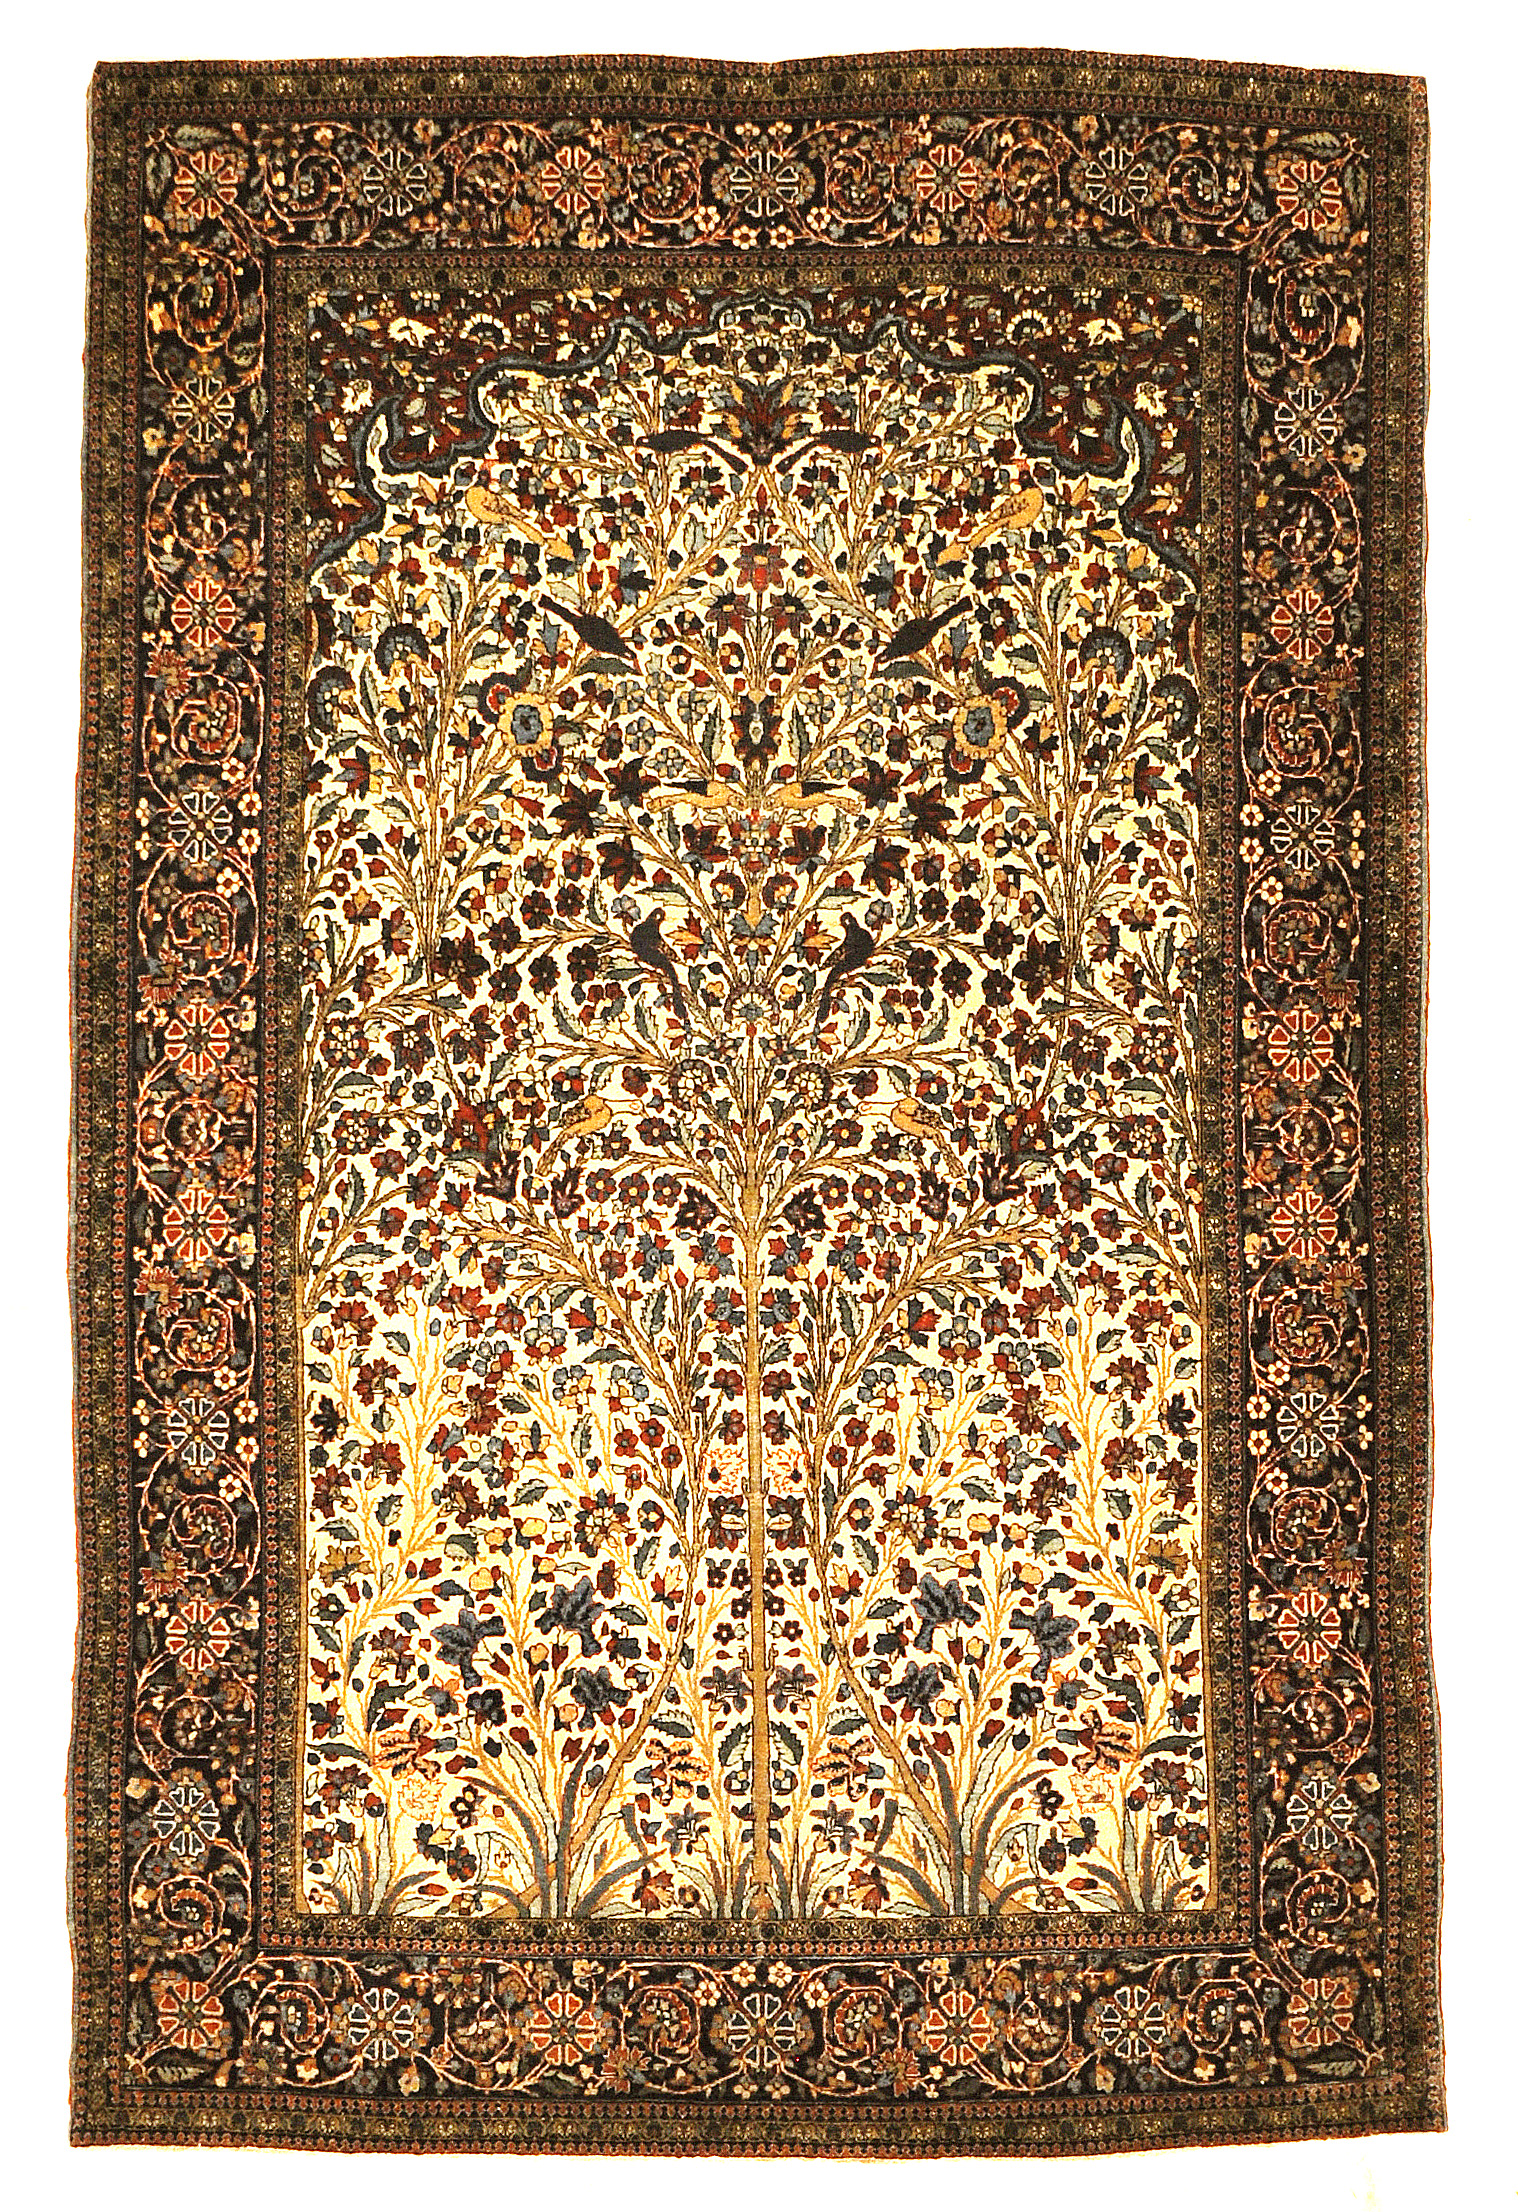 Antique Persian Mohtasham Kashan Tree of Life Rug Authentic Persian Rug Santa Barbara Design Center Carpet Floral Genuine Woven Art